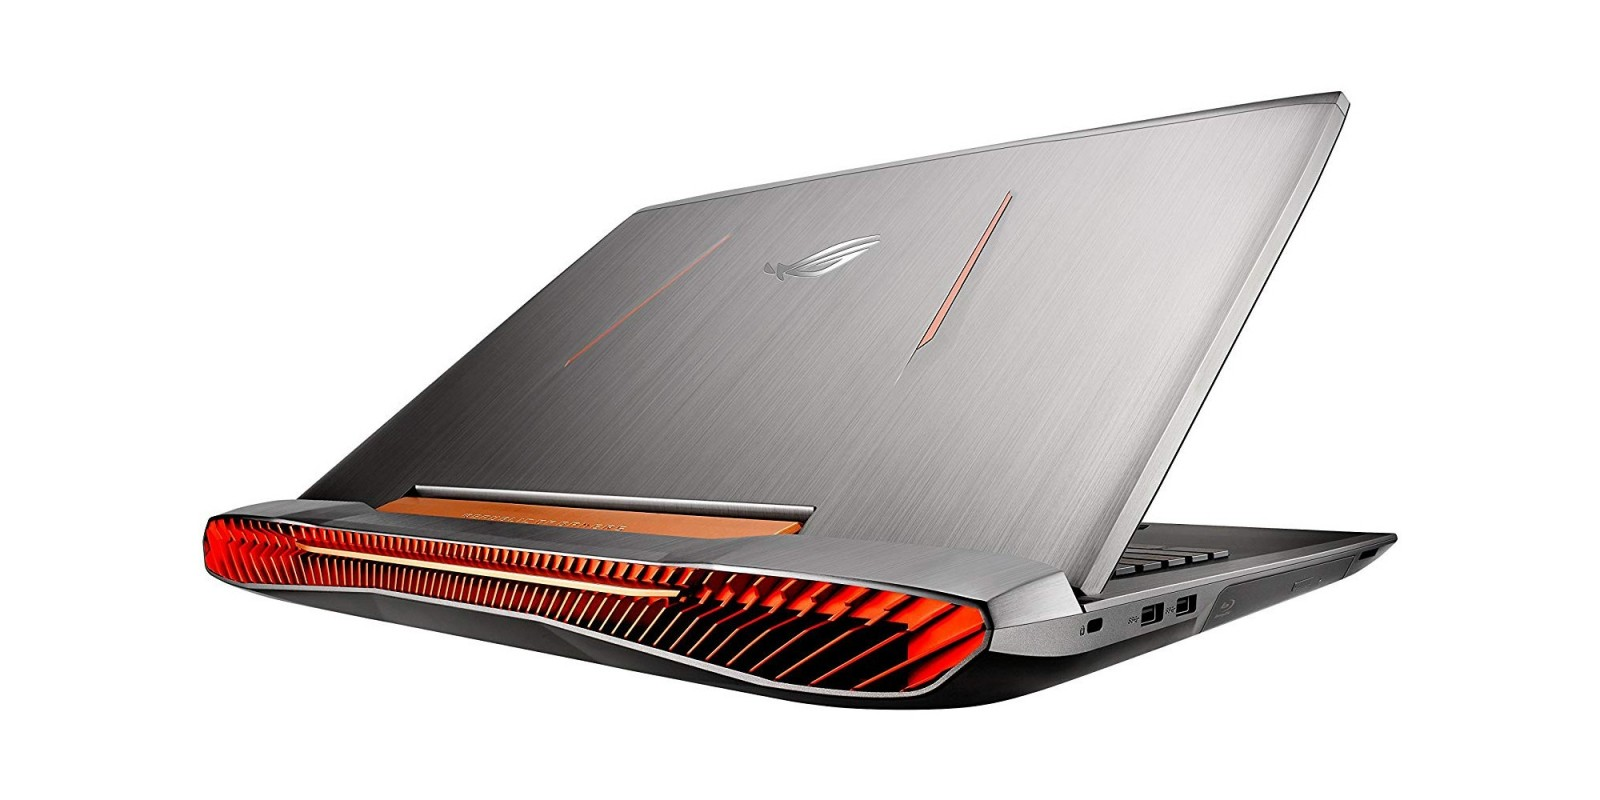 The 5 Best Laptops for 3D Modeling in 2019 (Power GPU and